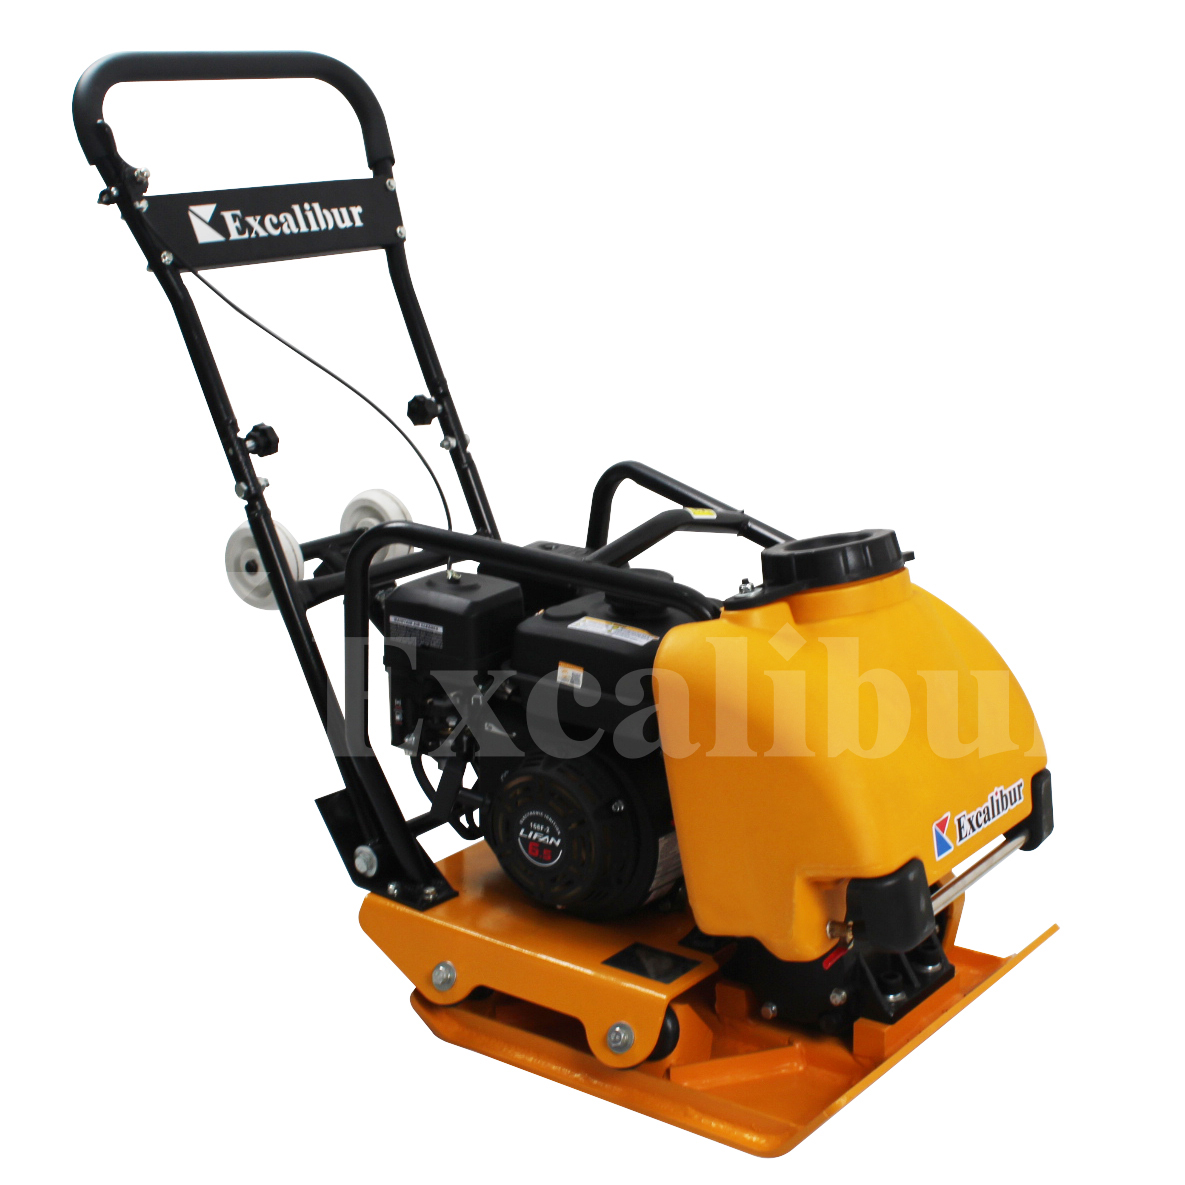 Forward Vibratory Plate Compactor with water tank powered by 6.5HP Gasoline Engine SC-77W